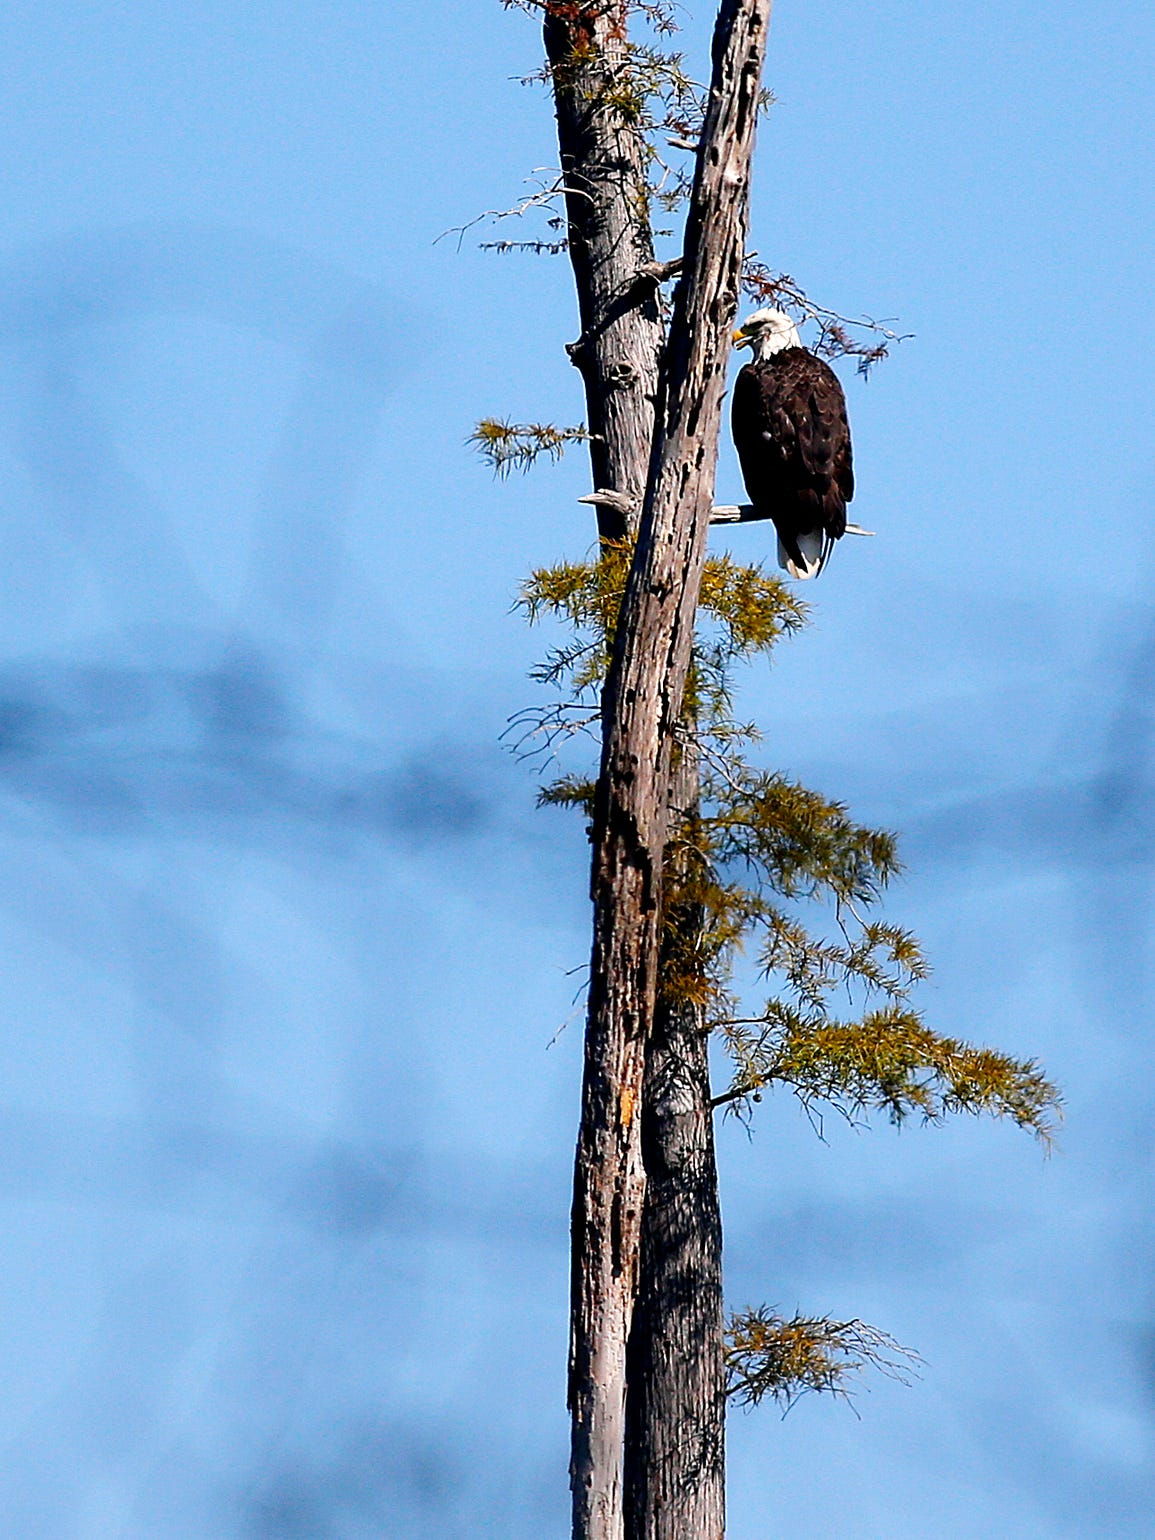 A bald eagle, one of a mating pair, can often be seen